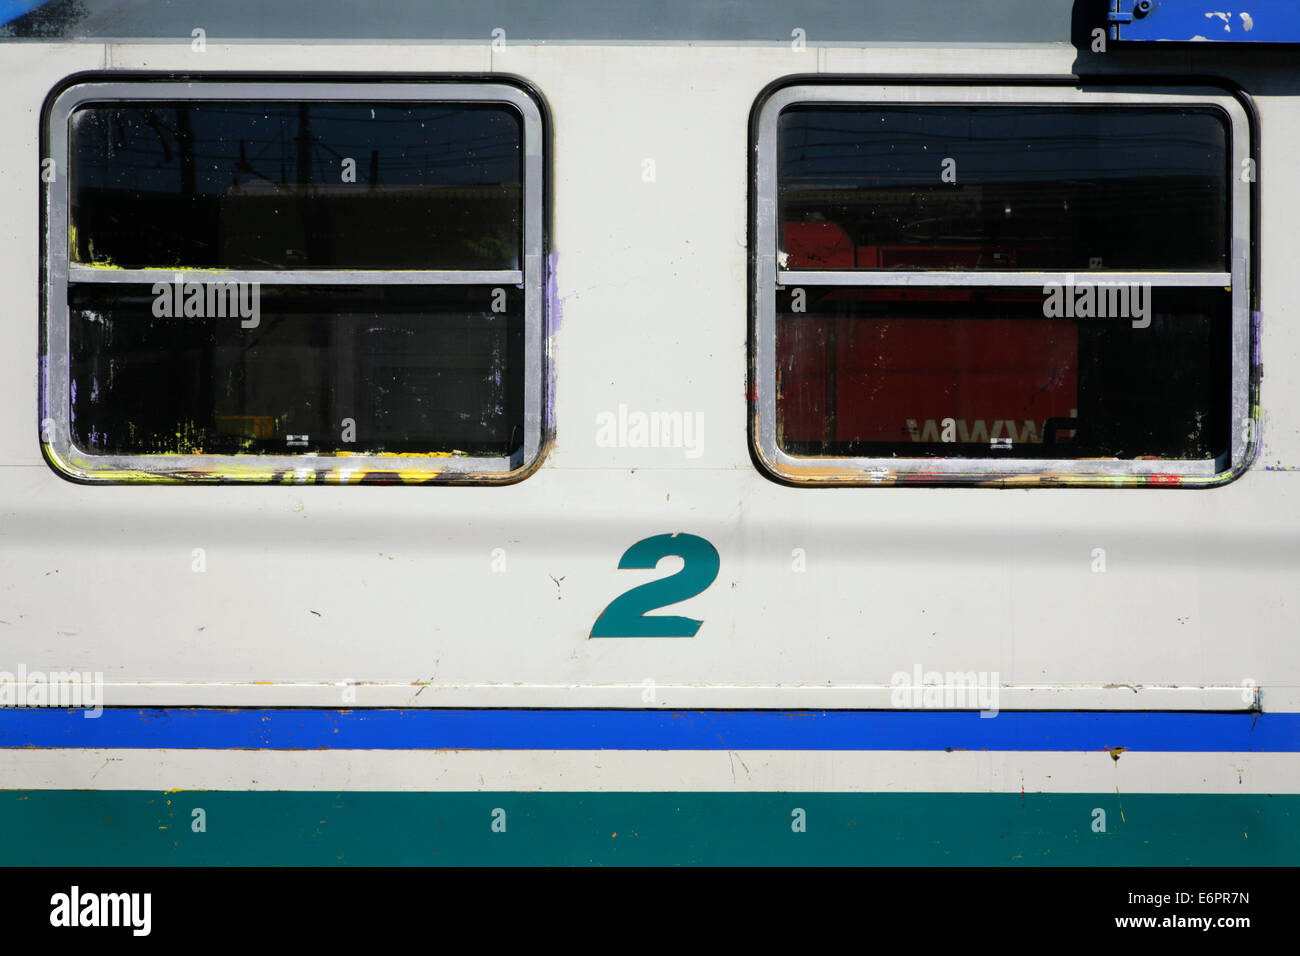 Russian Railways: The number of second-class carriages will decrease, and the price will increase by 20 06.12.2012